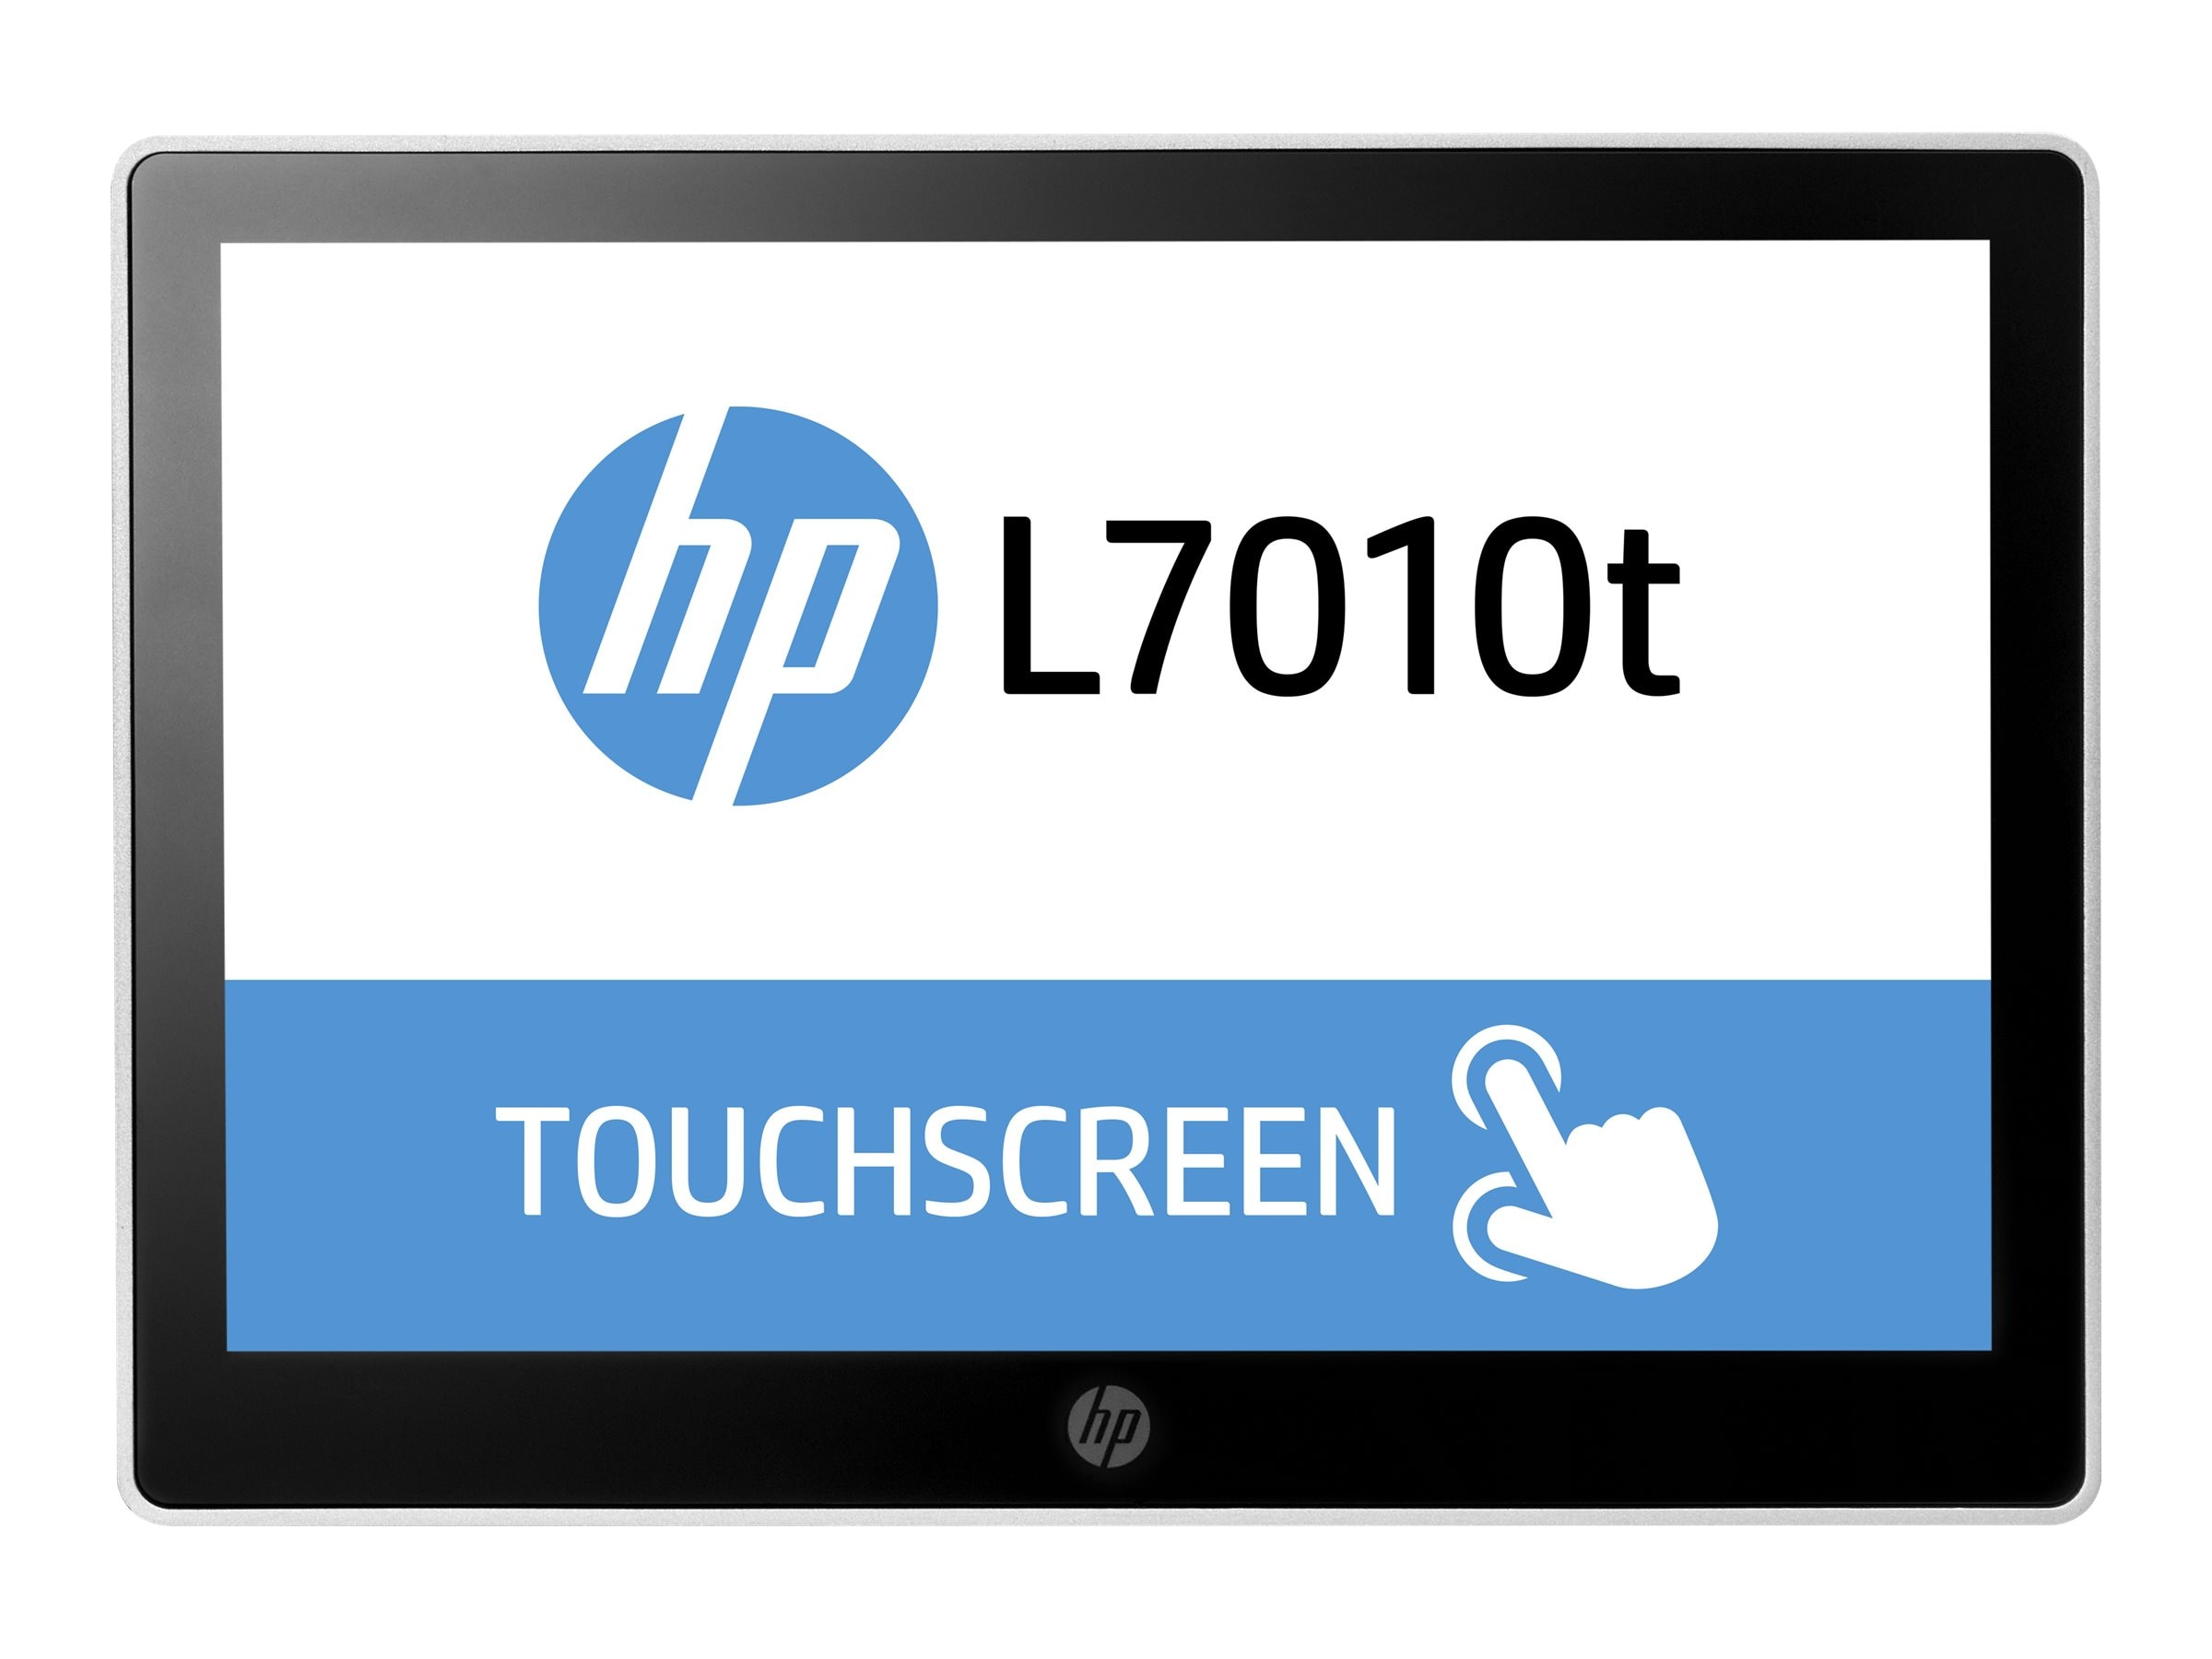 HP 10.1 L7010t LED-LCD Retail Touchscreen Monitor, Black